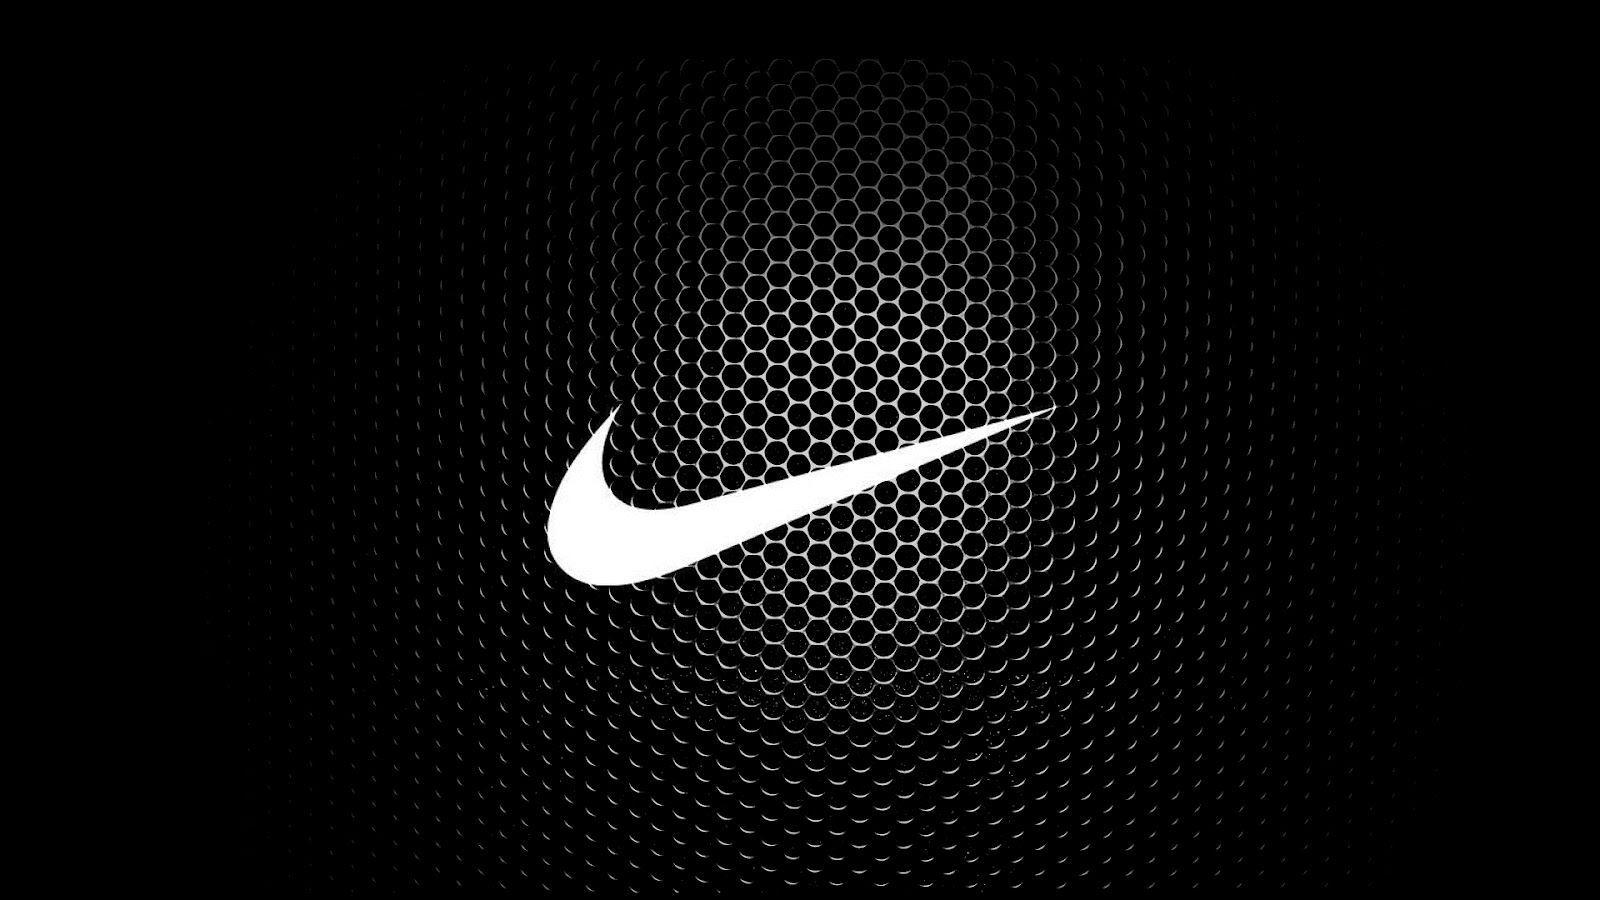 nike wallpapers cool white - photo #1